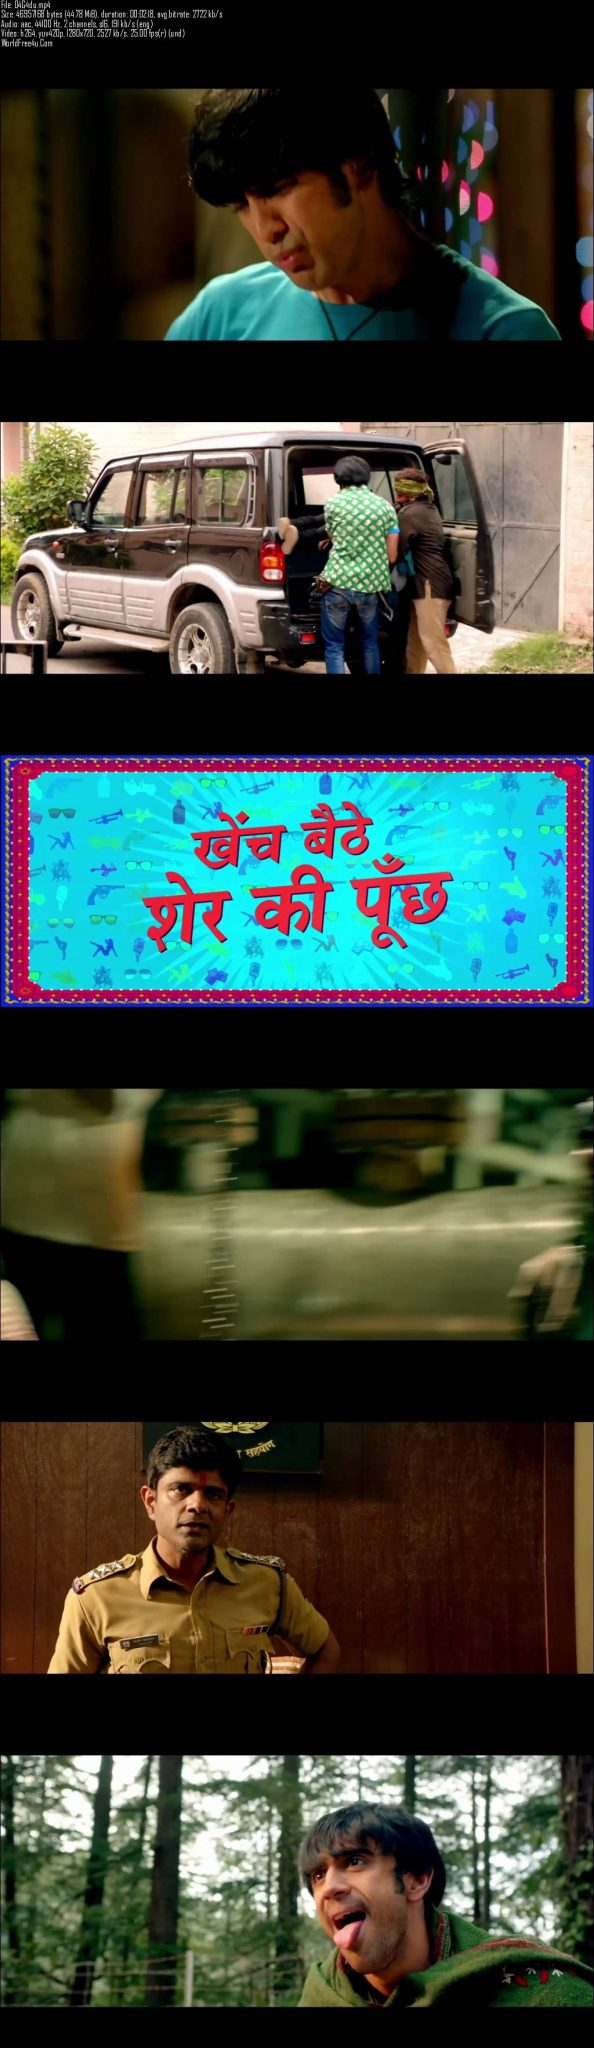 Guddu Rangeela (2015) Hindi Movie Official Trailer